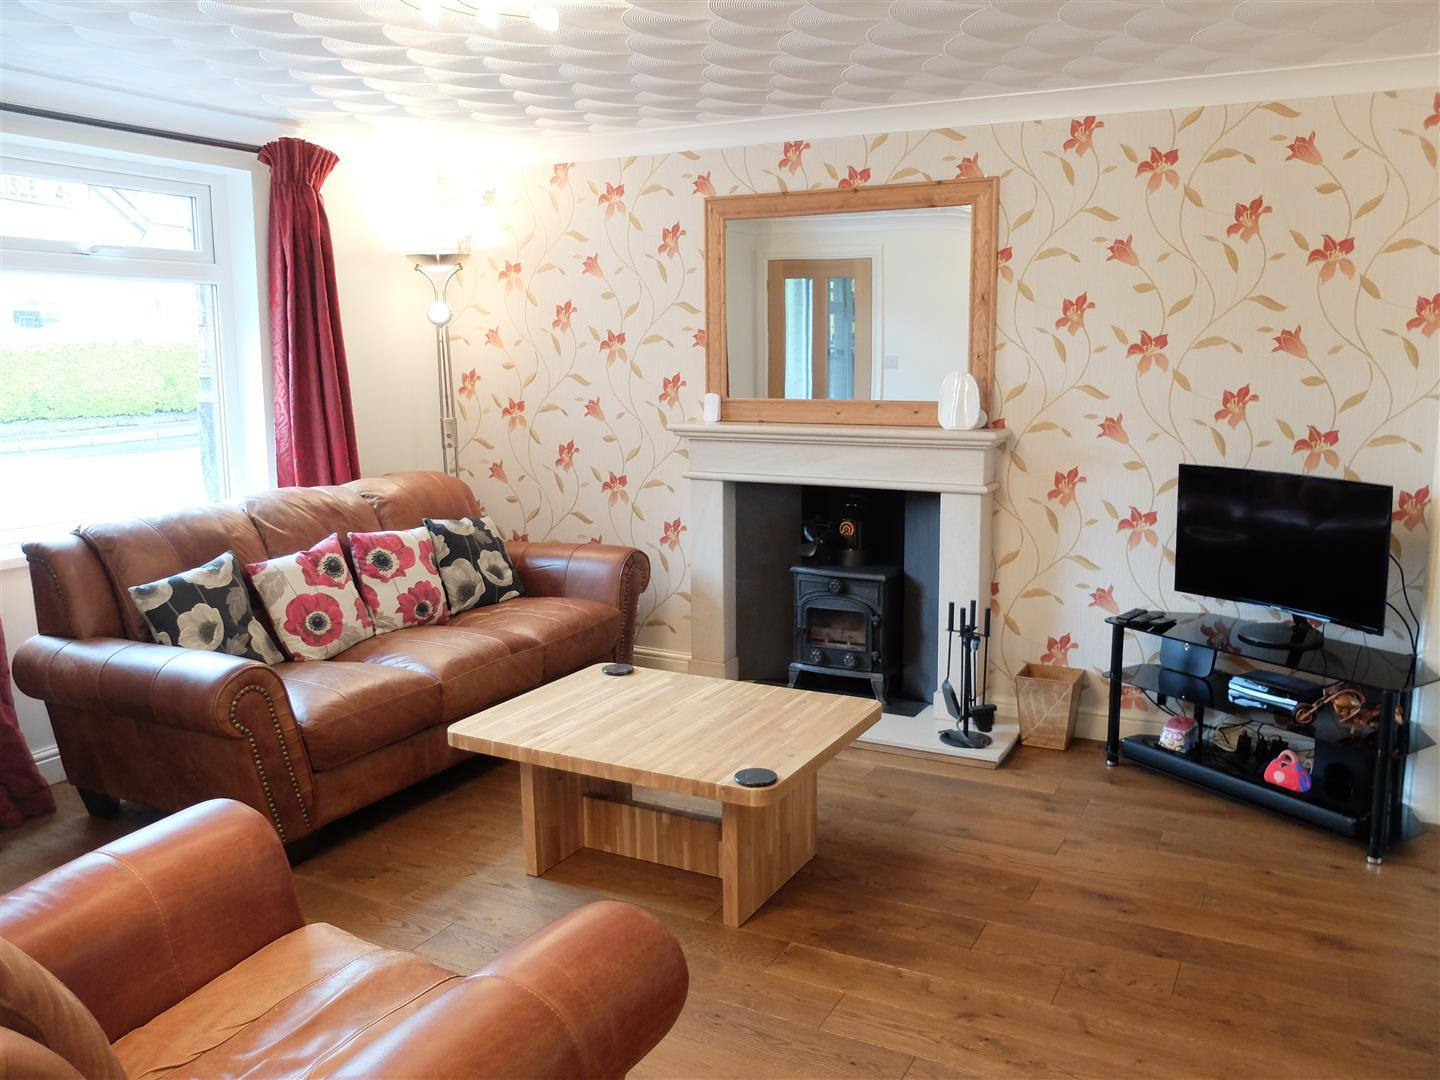 4 Bedrooms House - Detached For Sale